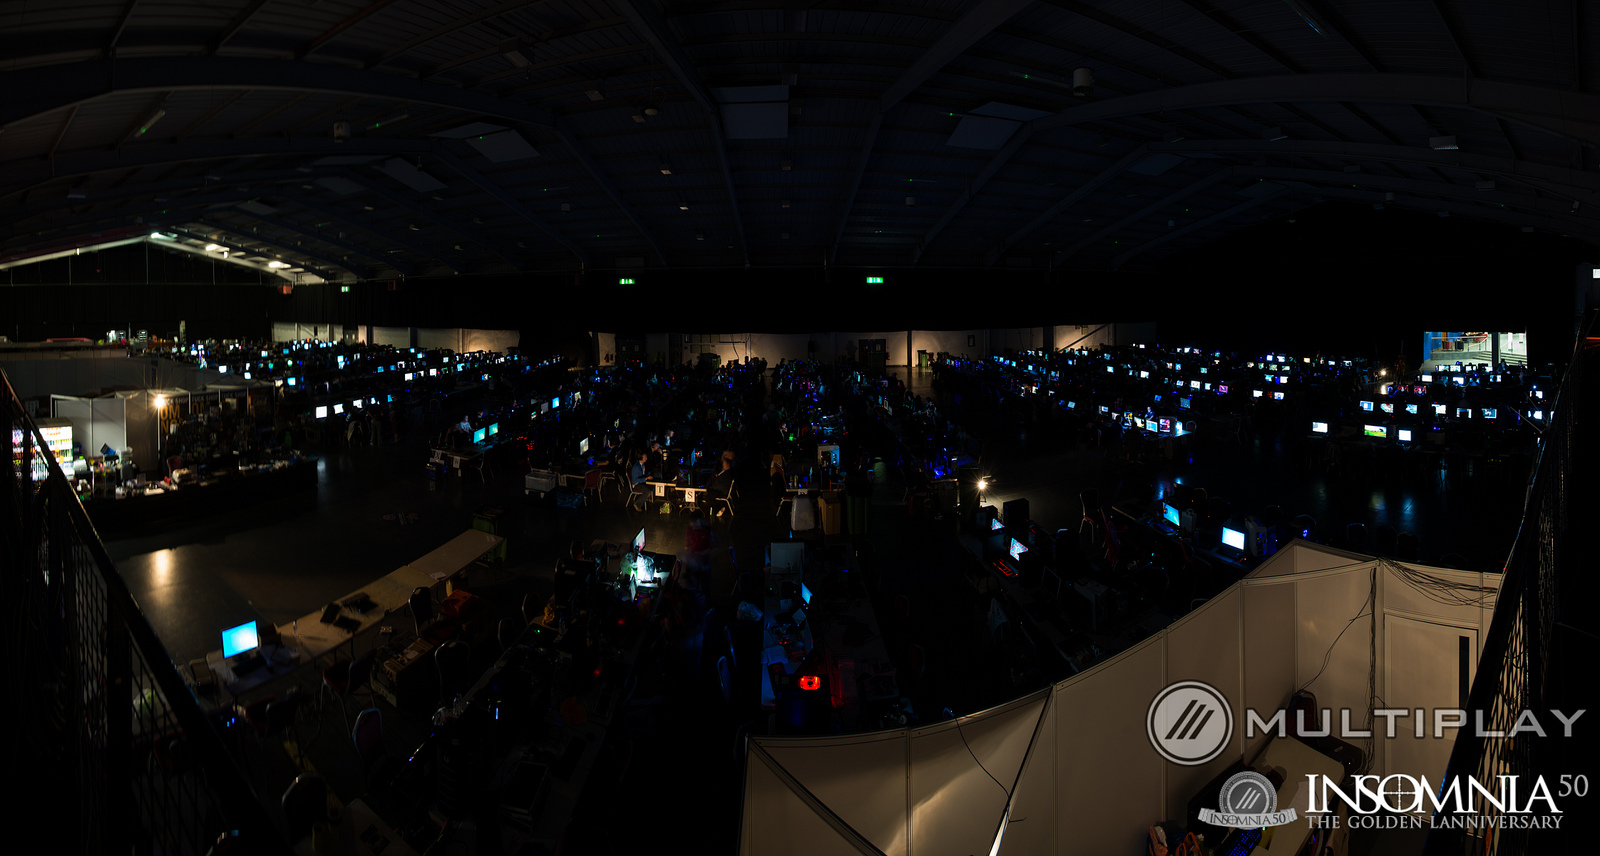 Multiplay announces first wave of content for its biggest Easter weekend at Insomnia 51